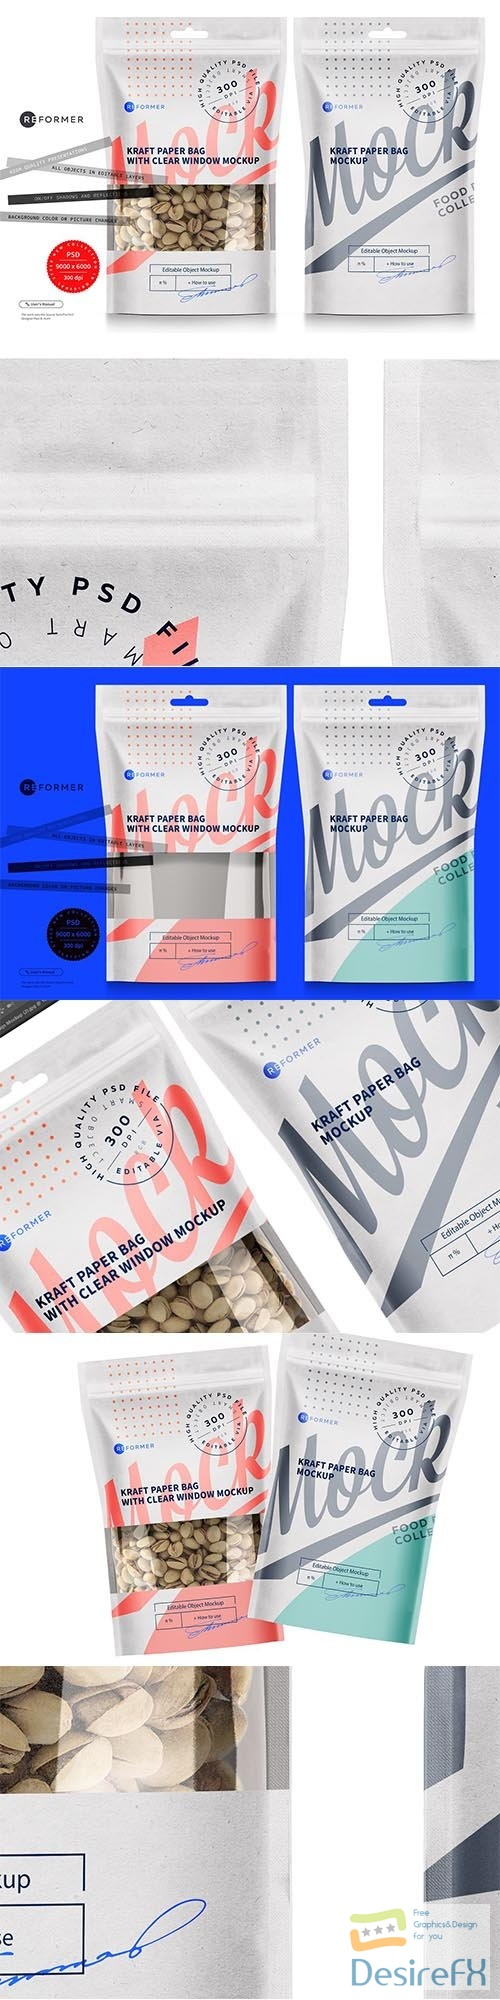 CreativeMarket - Two White Paper Bags Mockup 5722485